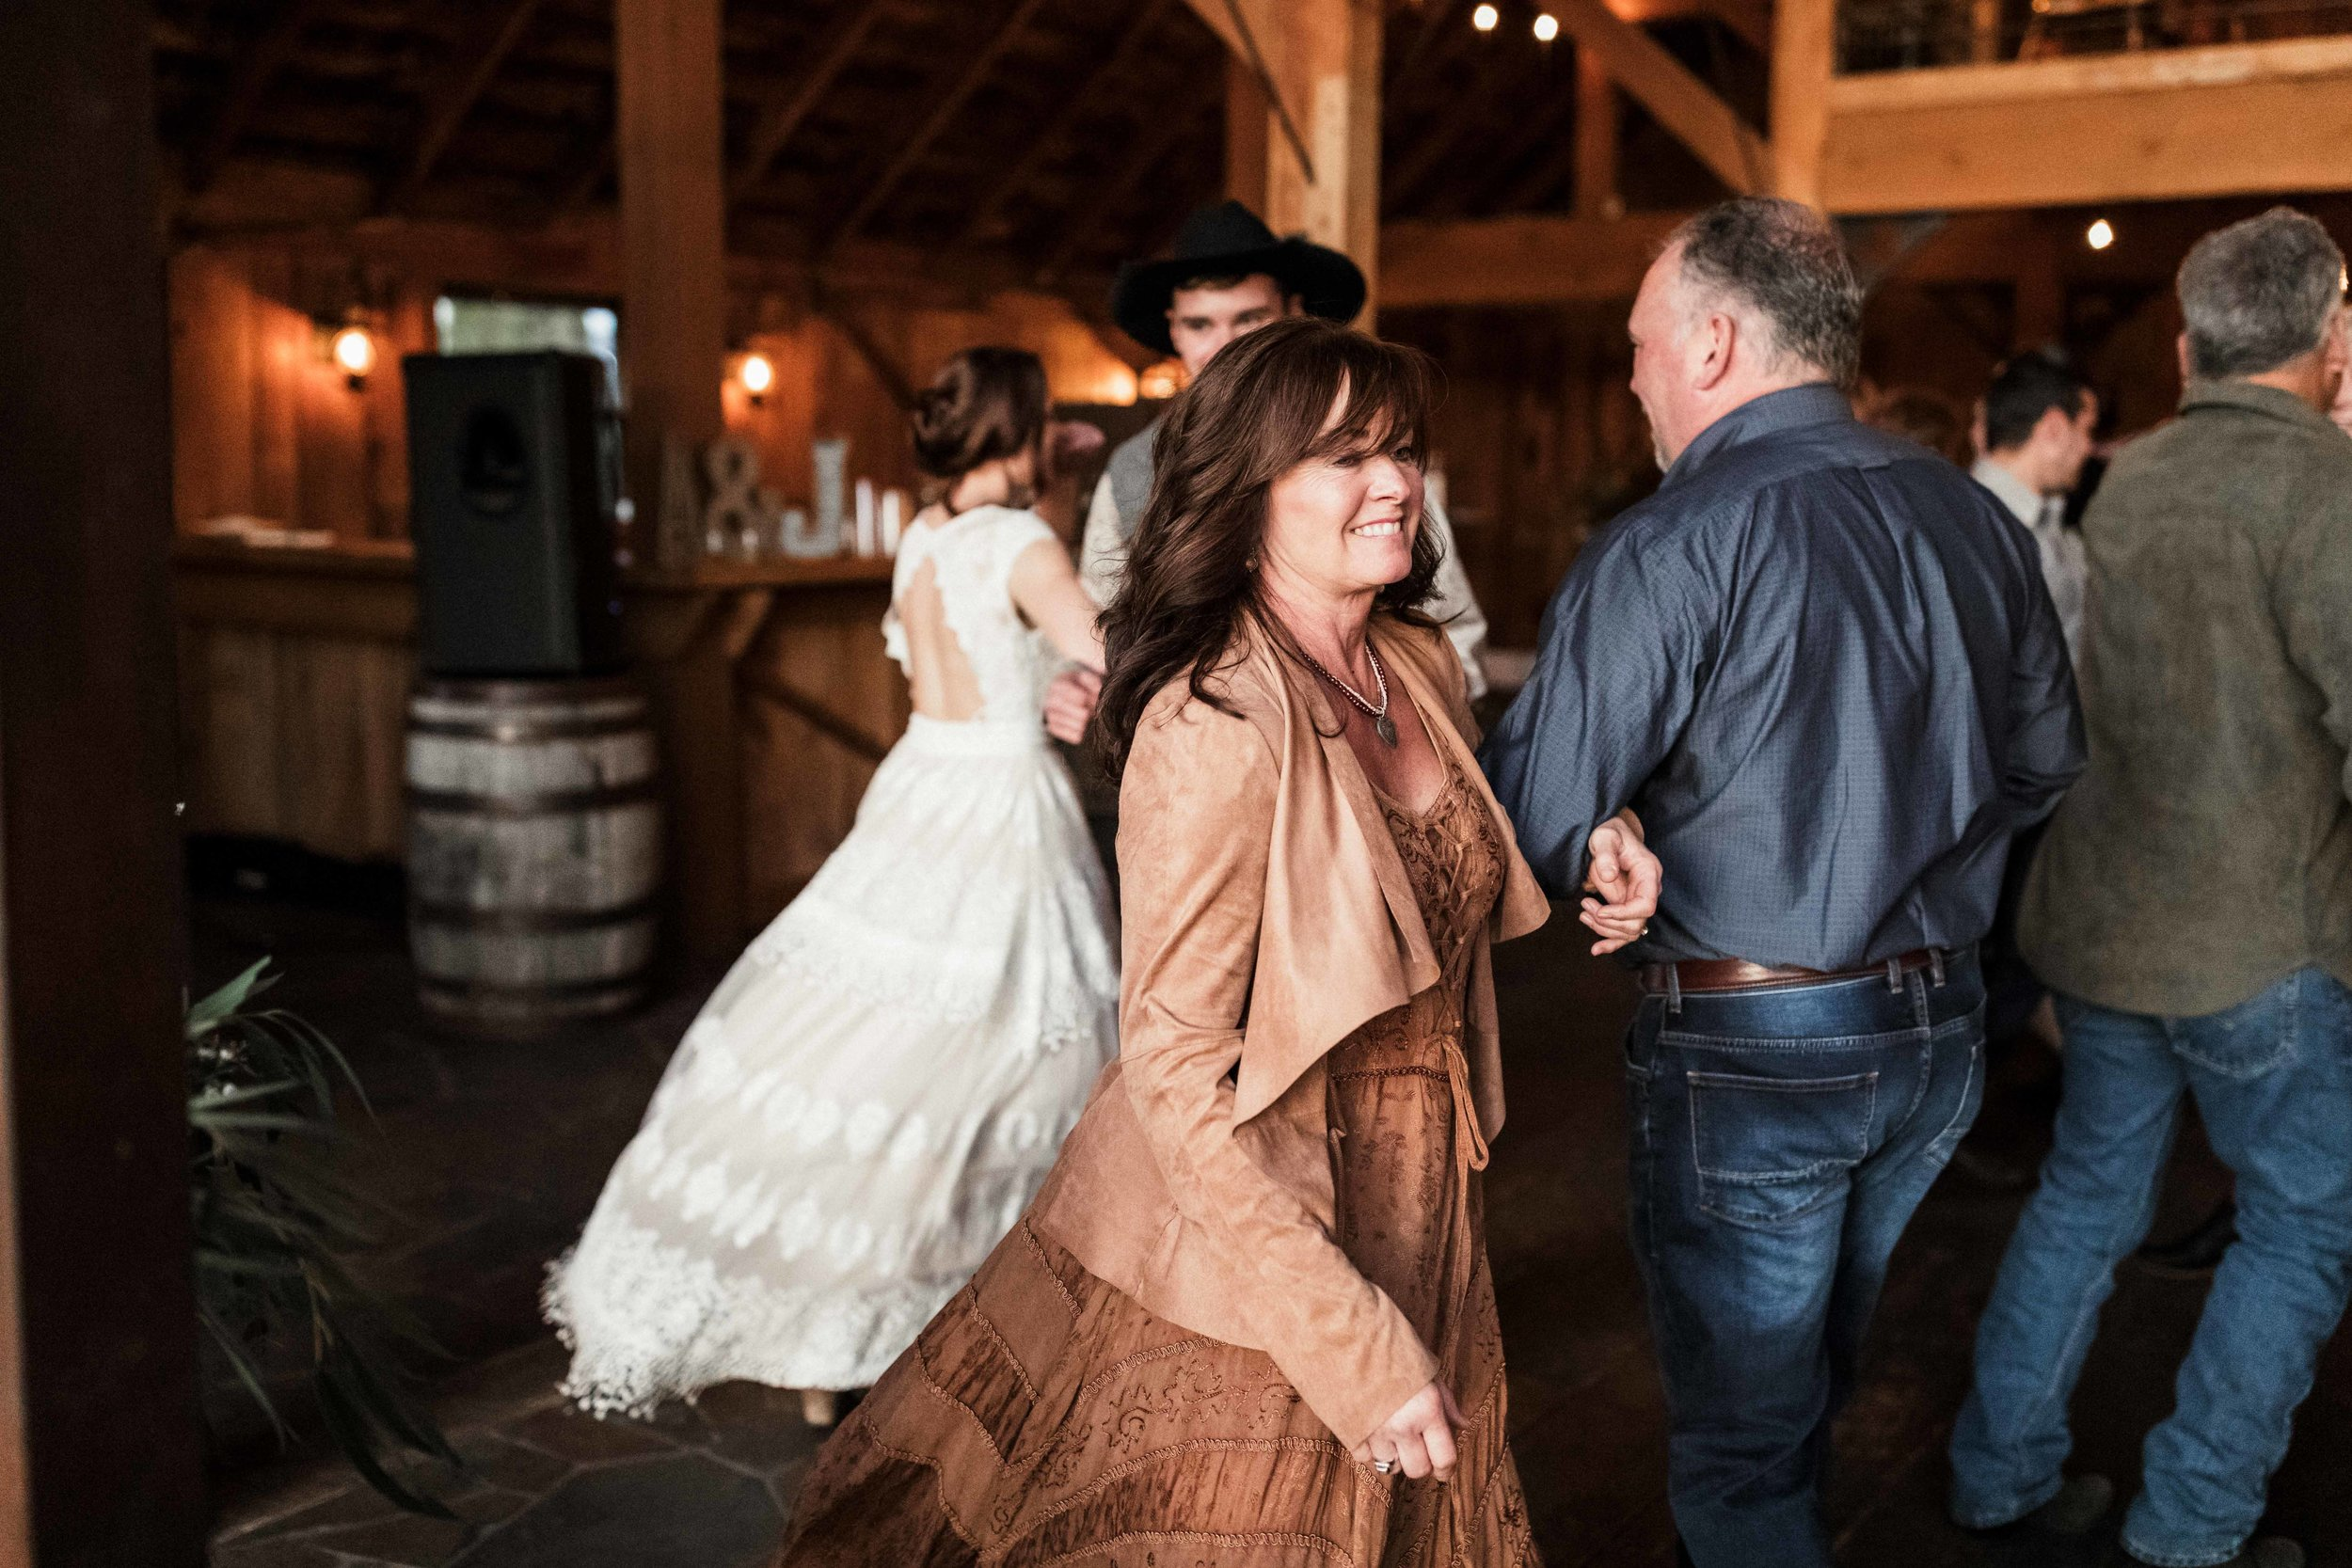 the-cattle-barn-wedding-86.jpg